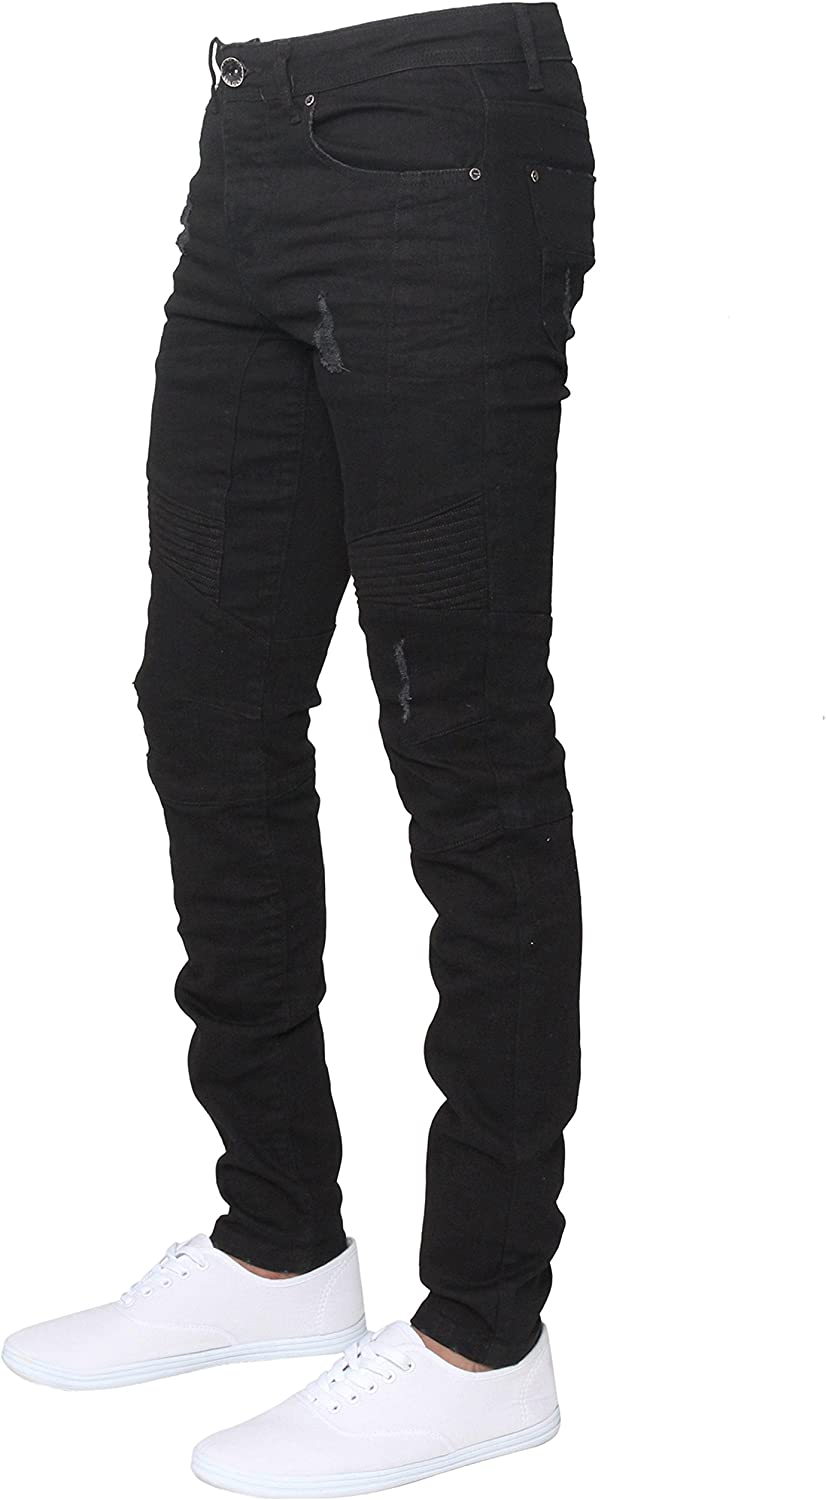 Men Enzo EZ376 Super Skinny Fit Stretch Ripped Style Denim Jeans Trousers Pants